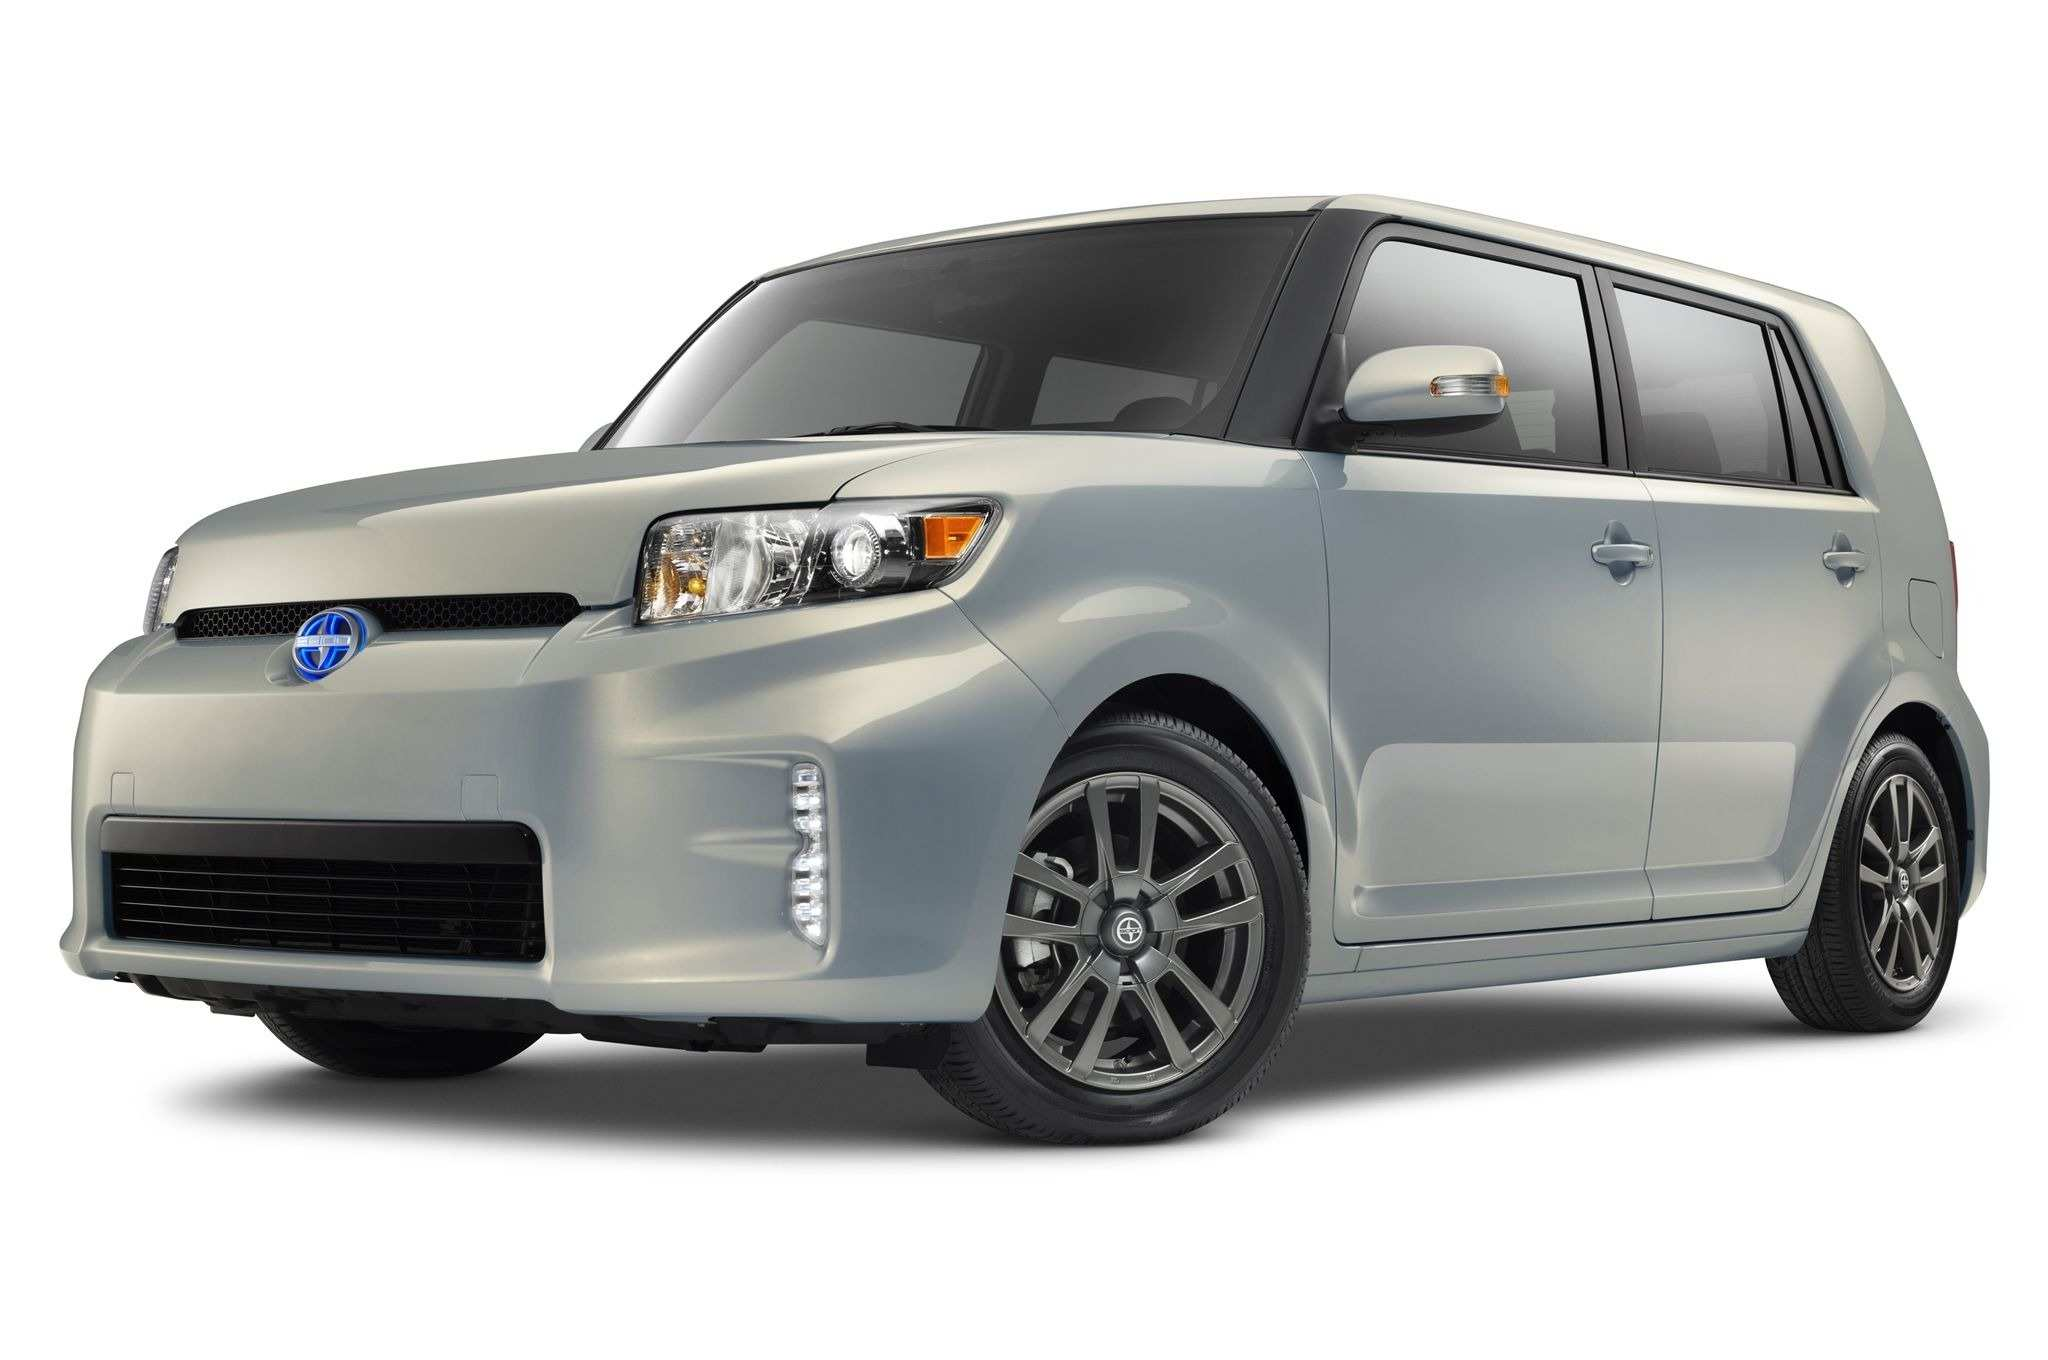 83 Great 2019 Scion Xb Release Date Redesign for 2019 Scion Xb Release Date